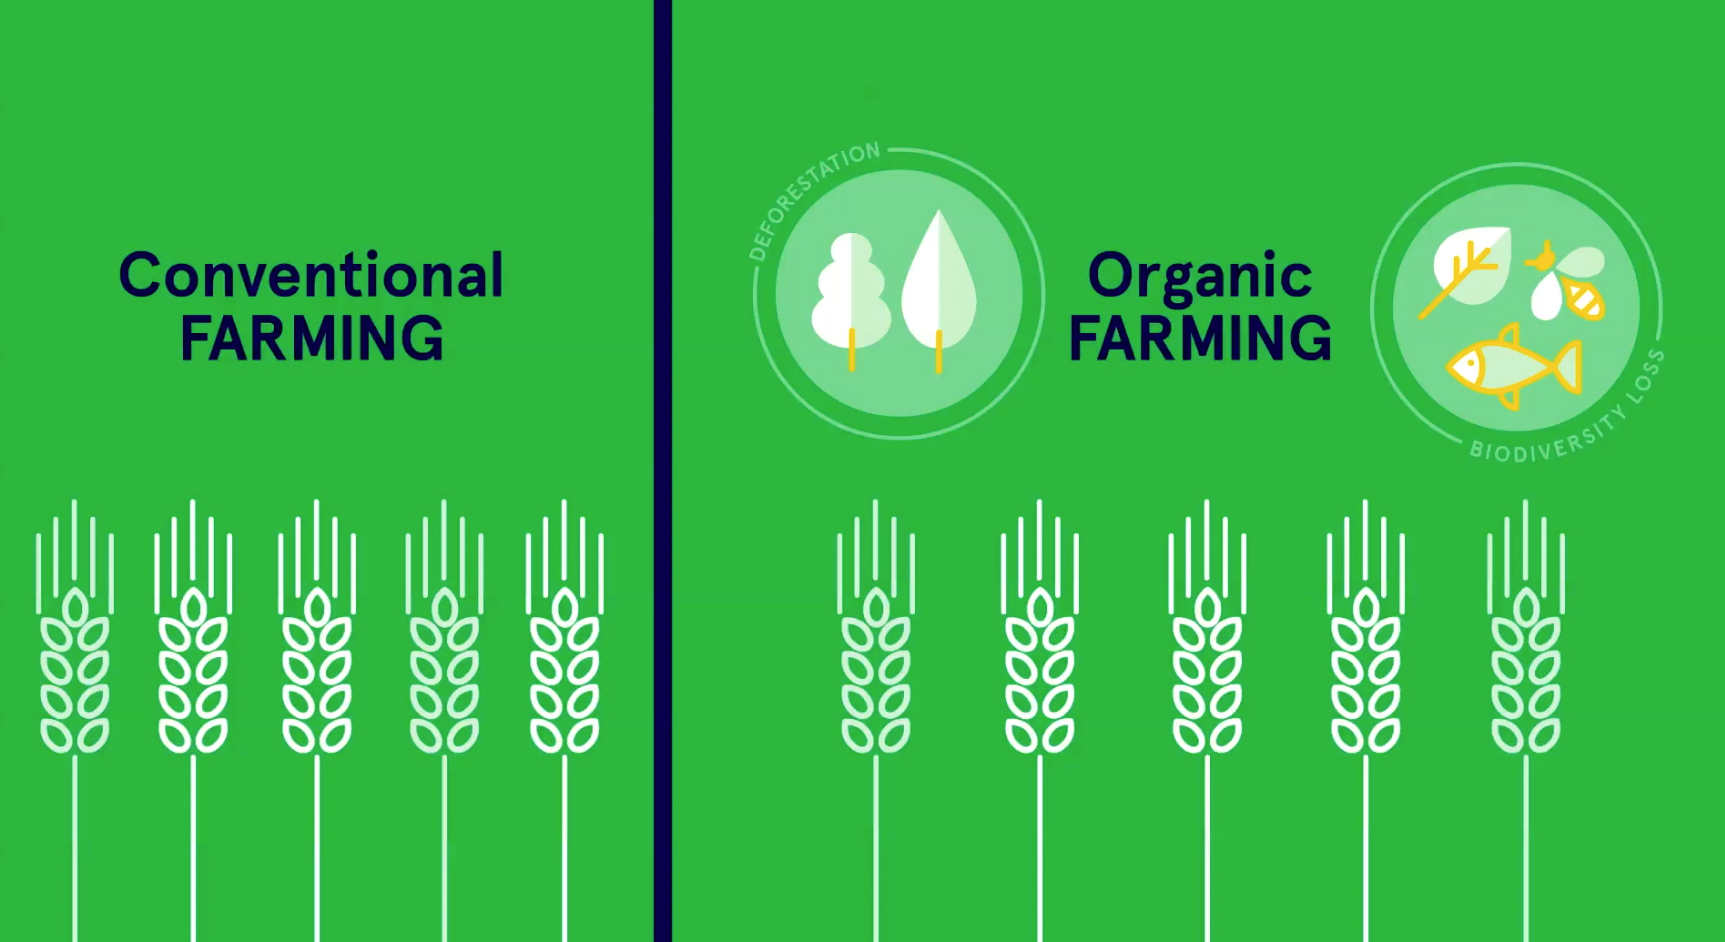 Organic farming in the EU